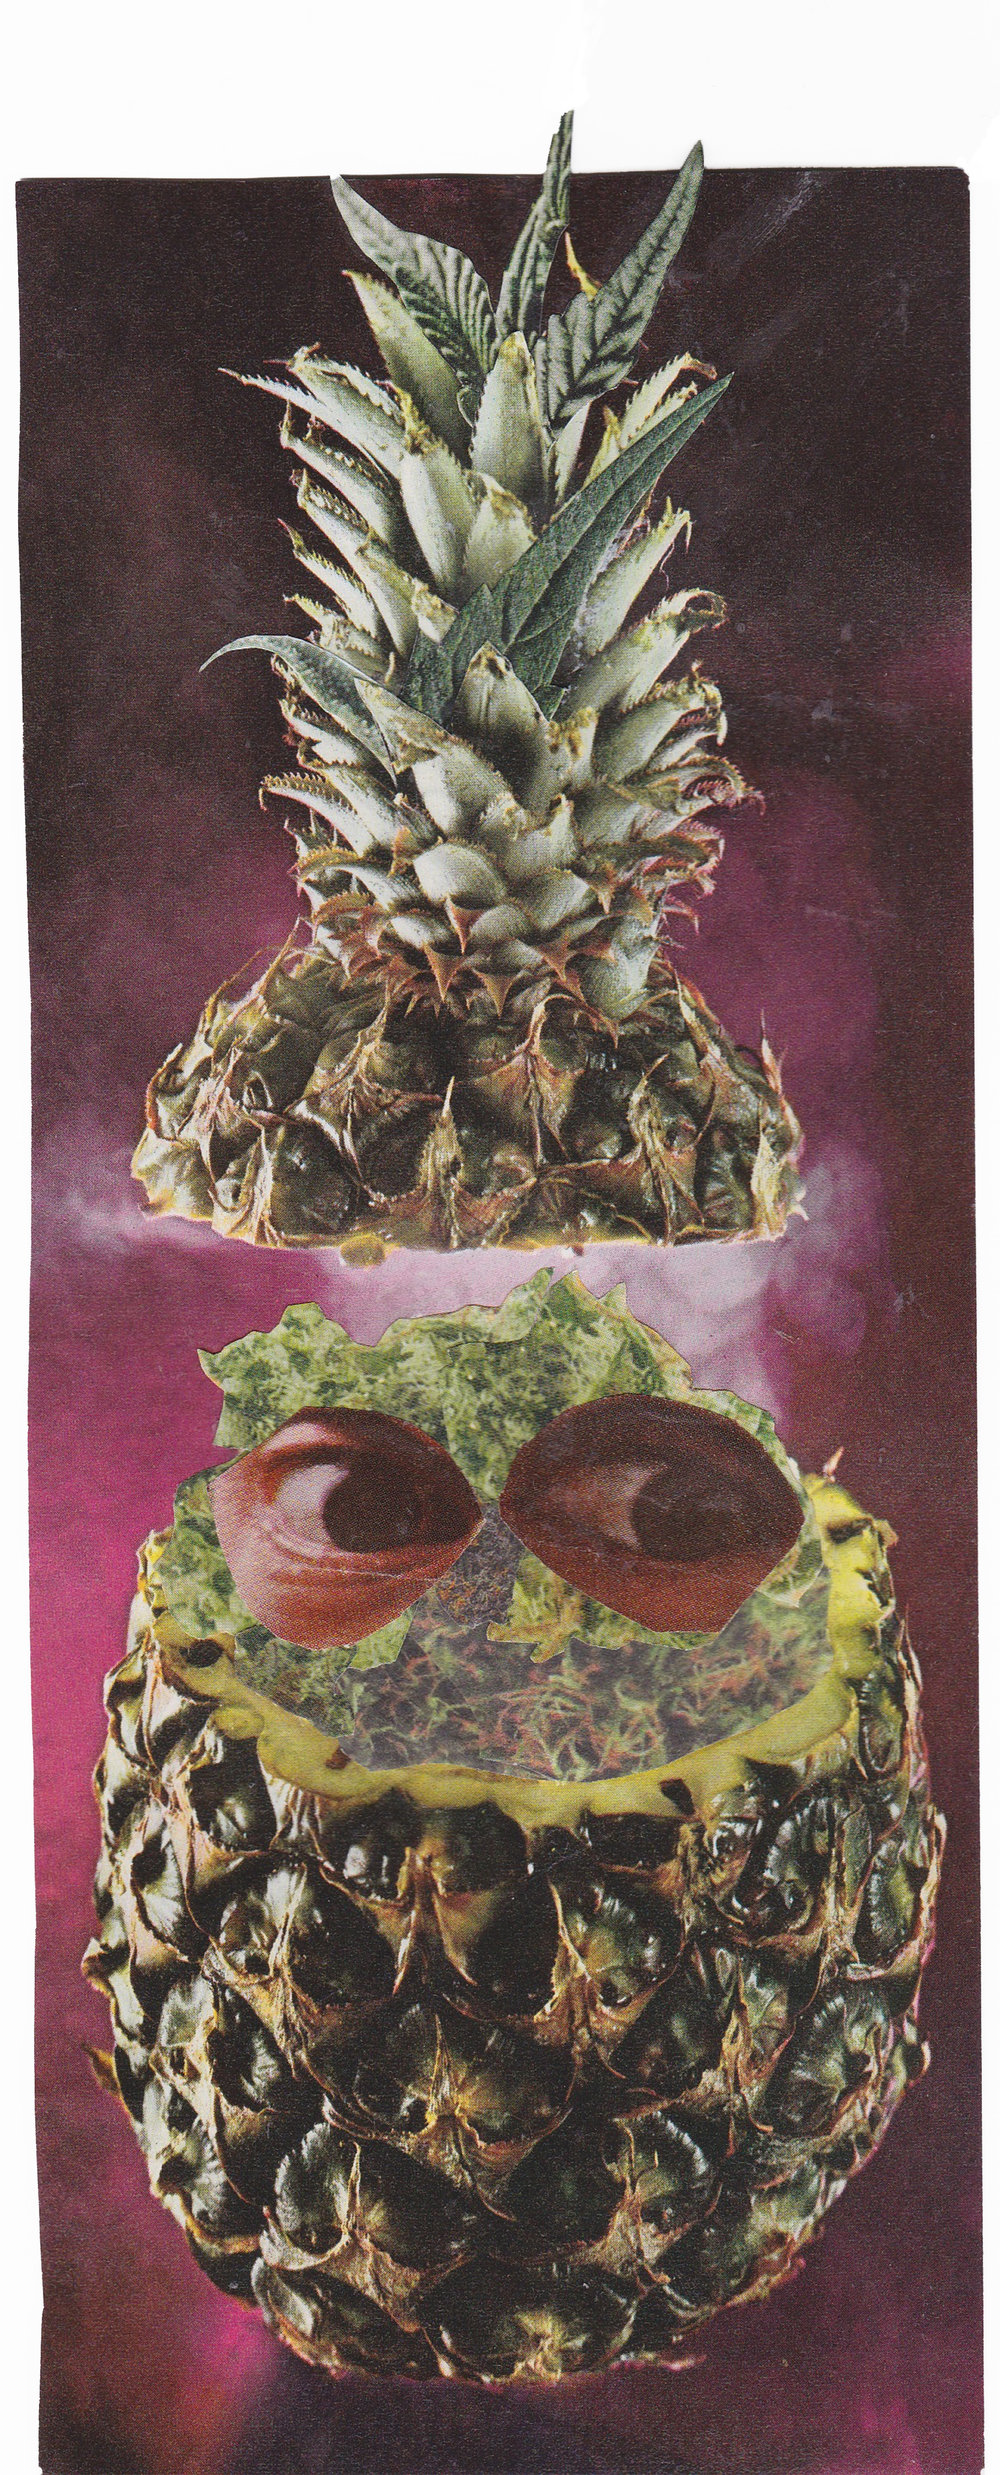 Pineapple Trouble